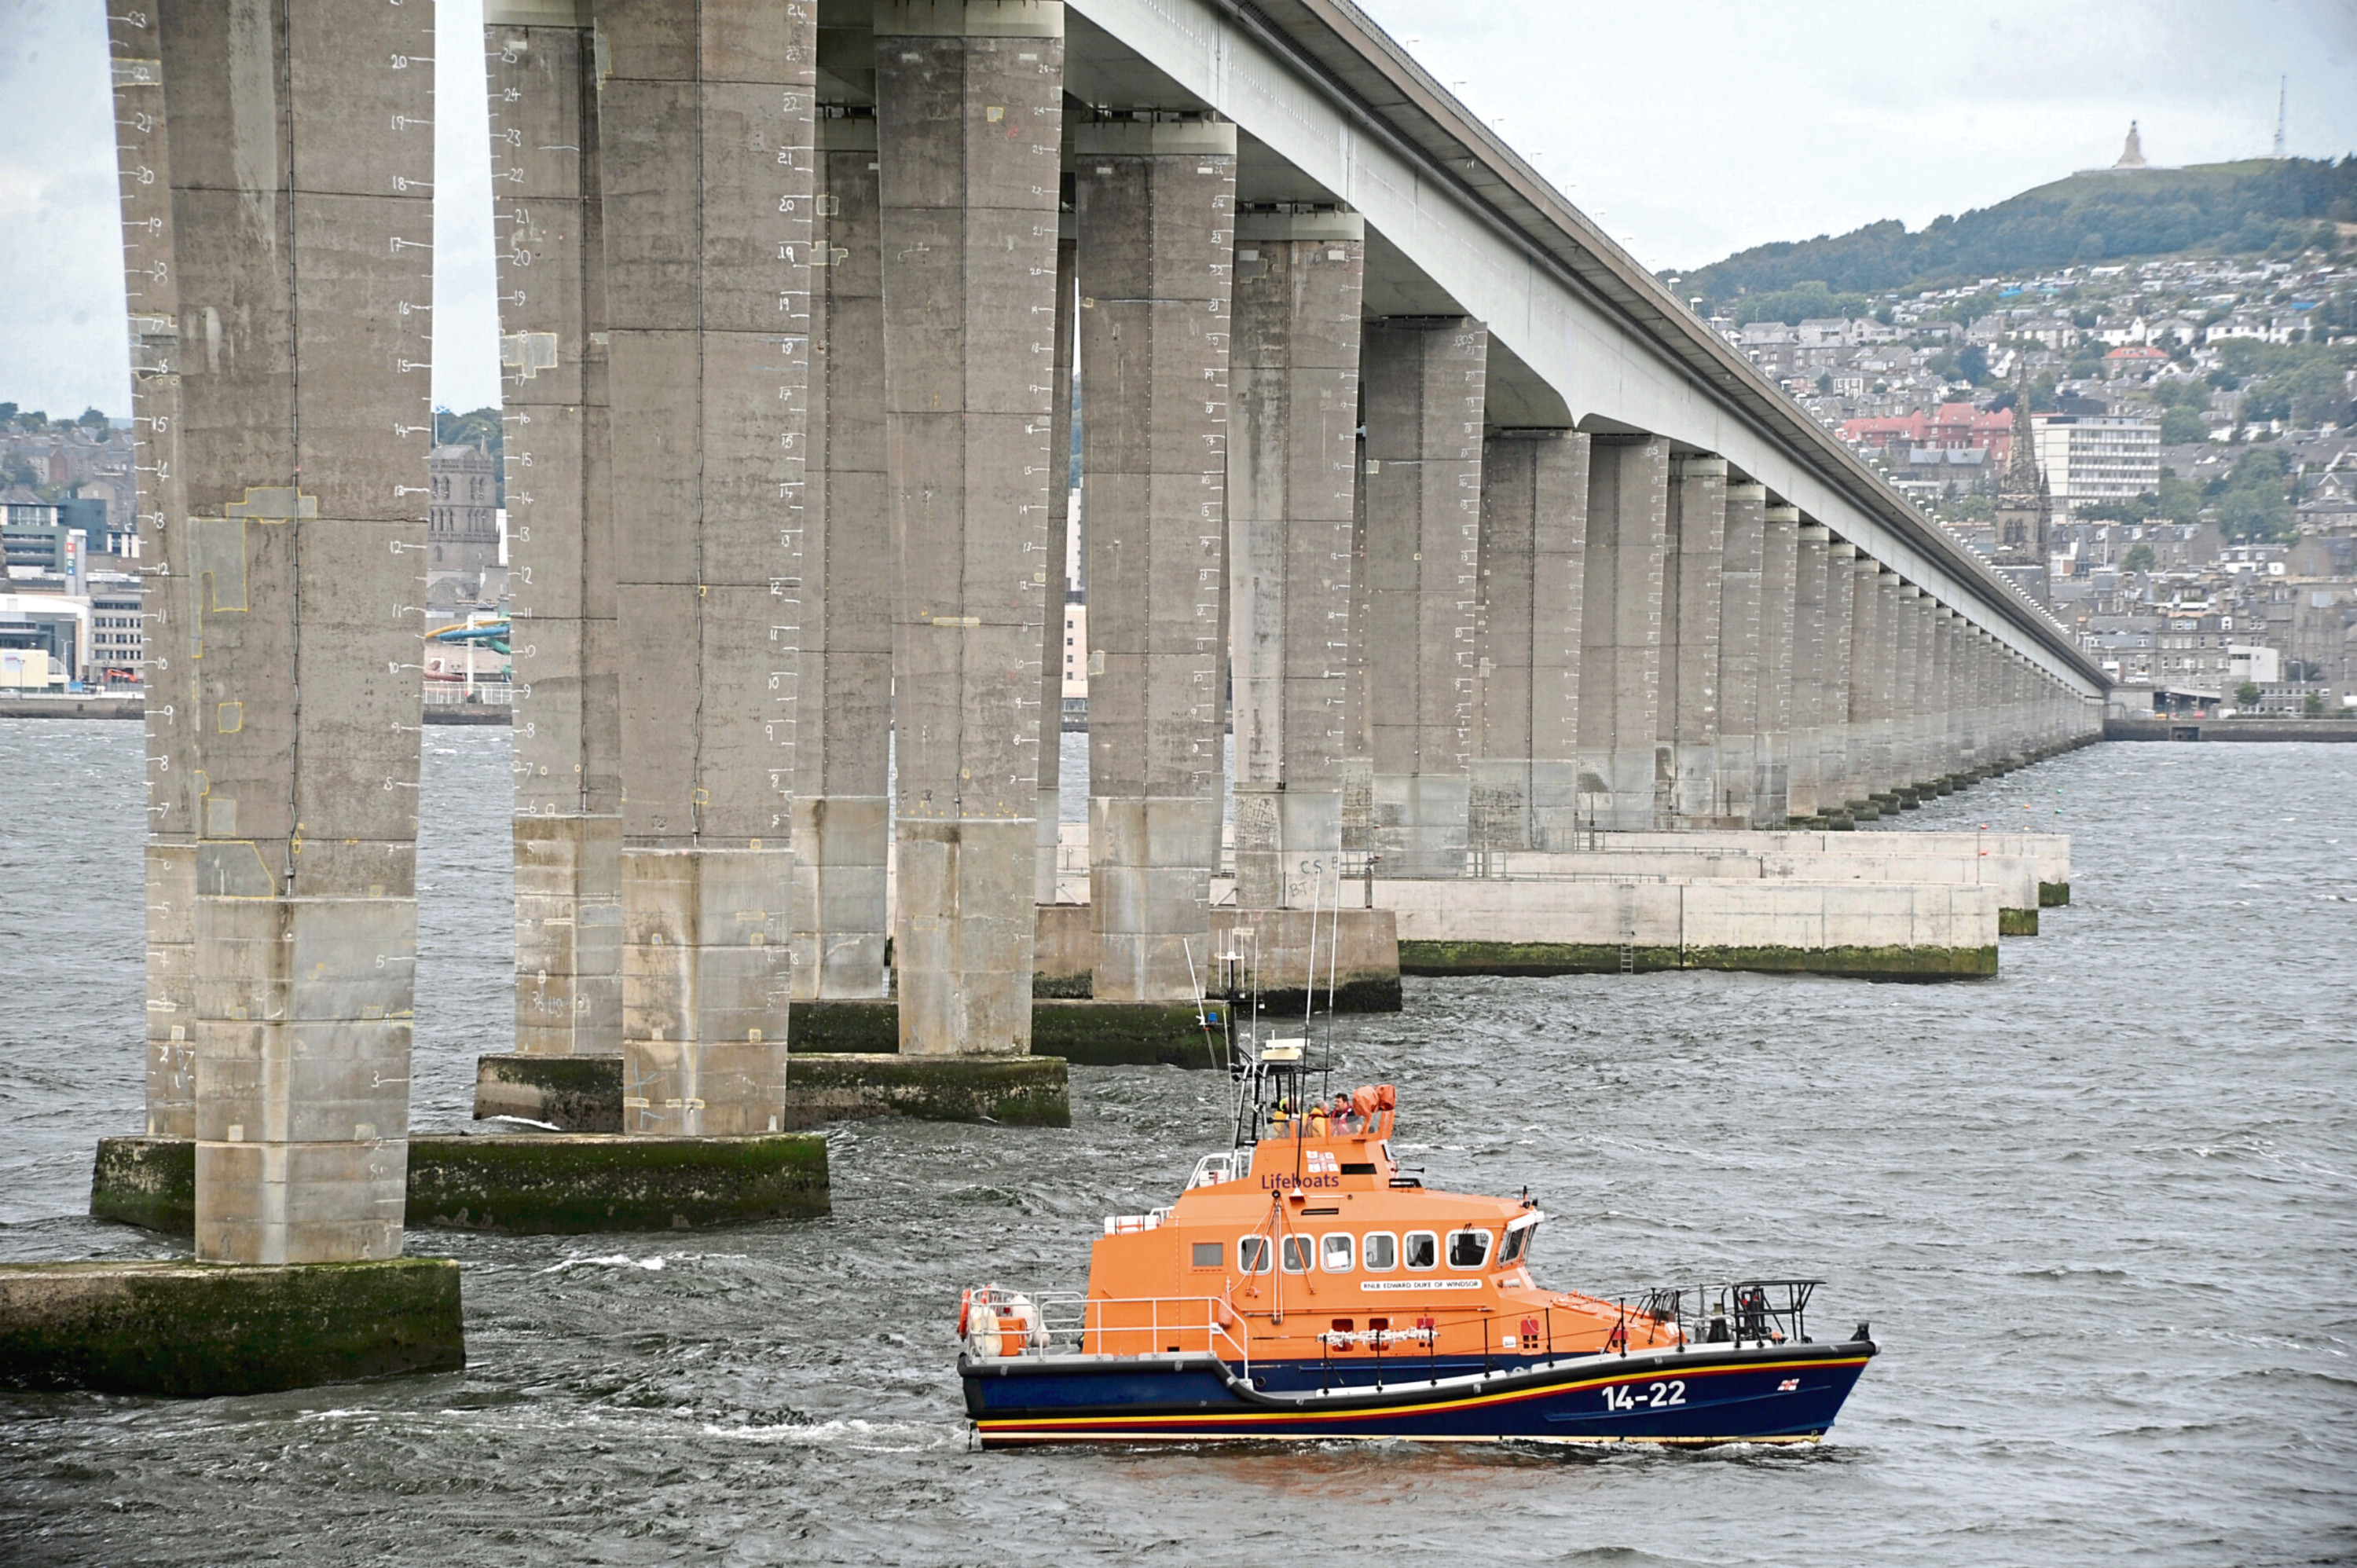 A lifeboat on the river